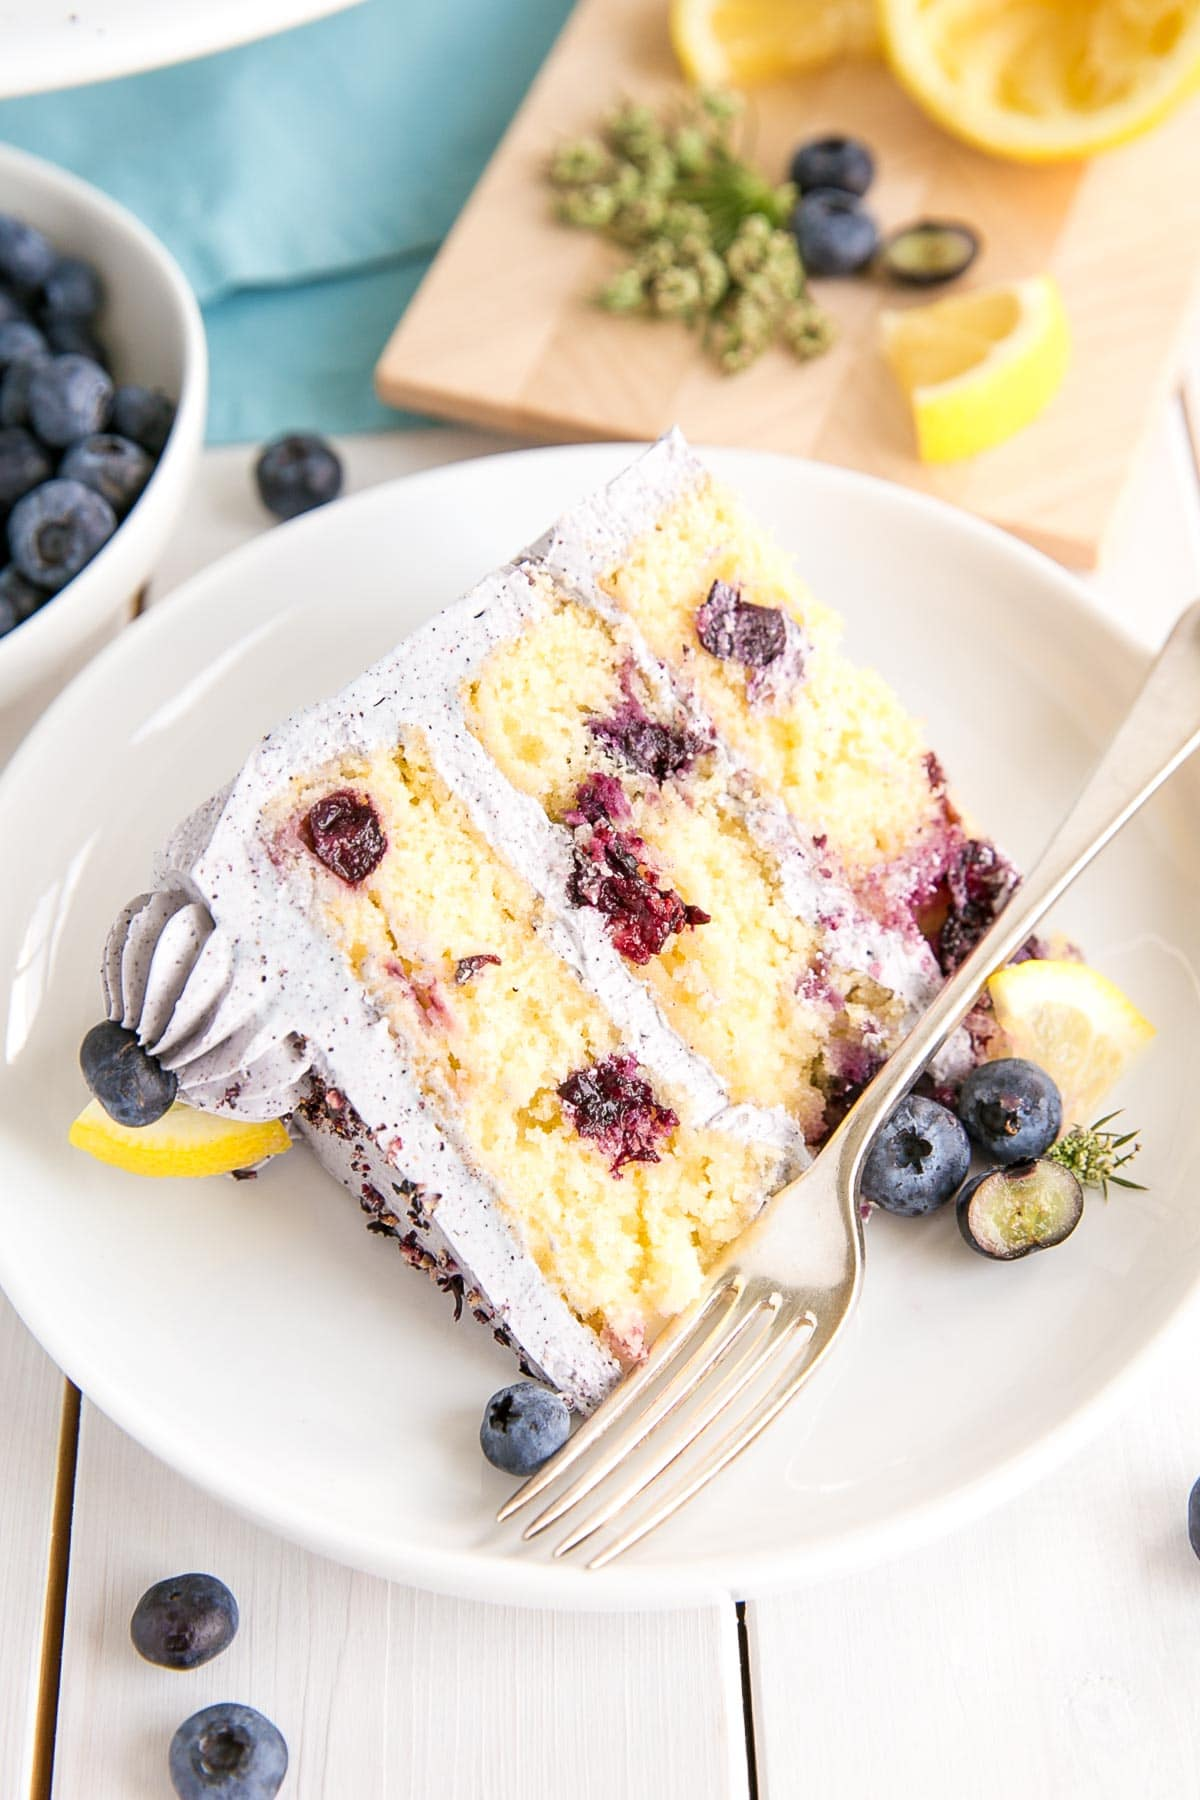 Blueberry Flavour Carrot Cake Recipe